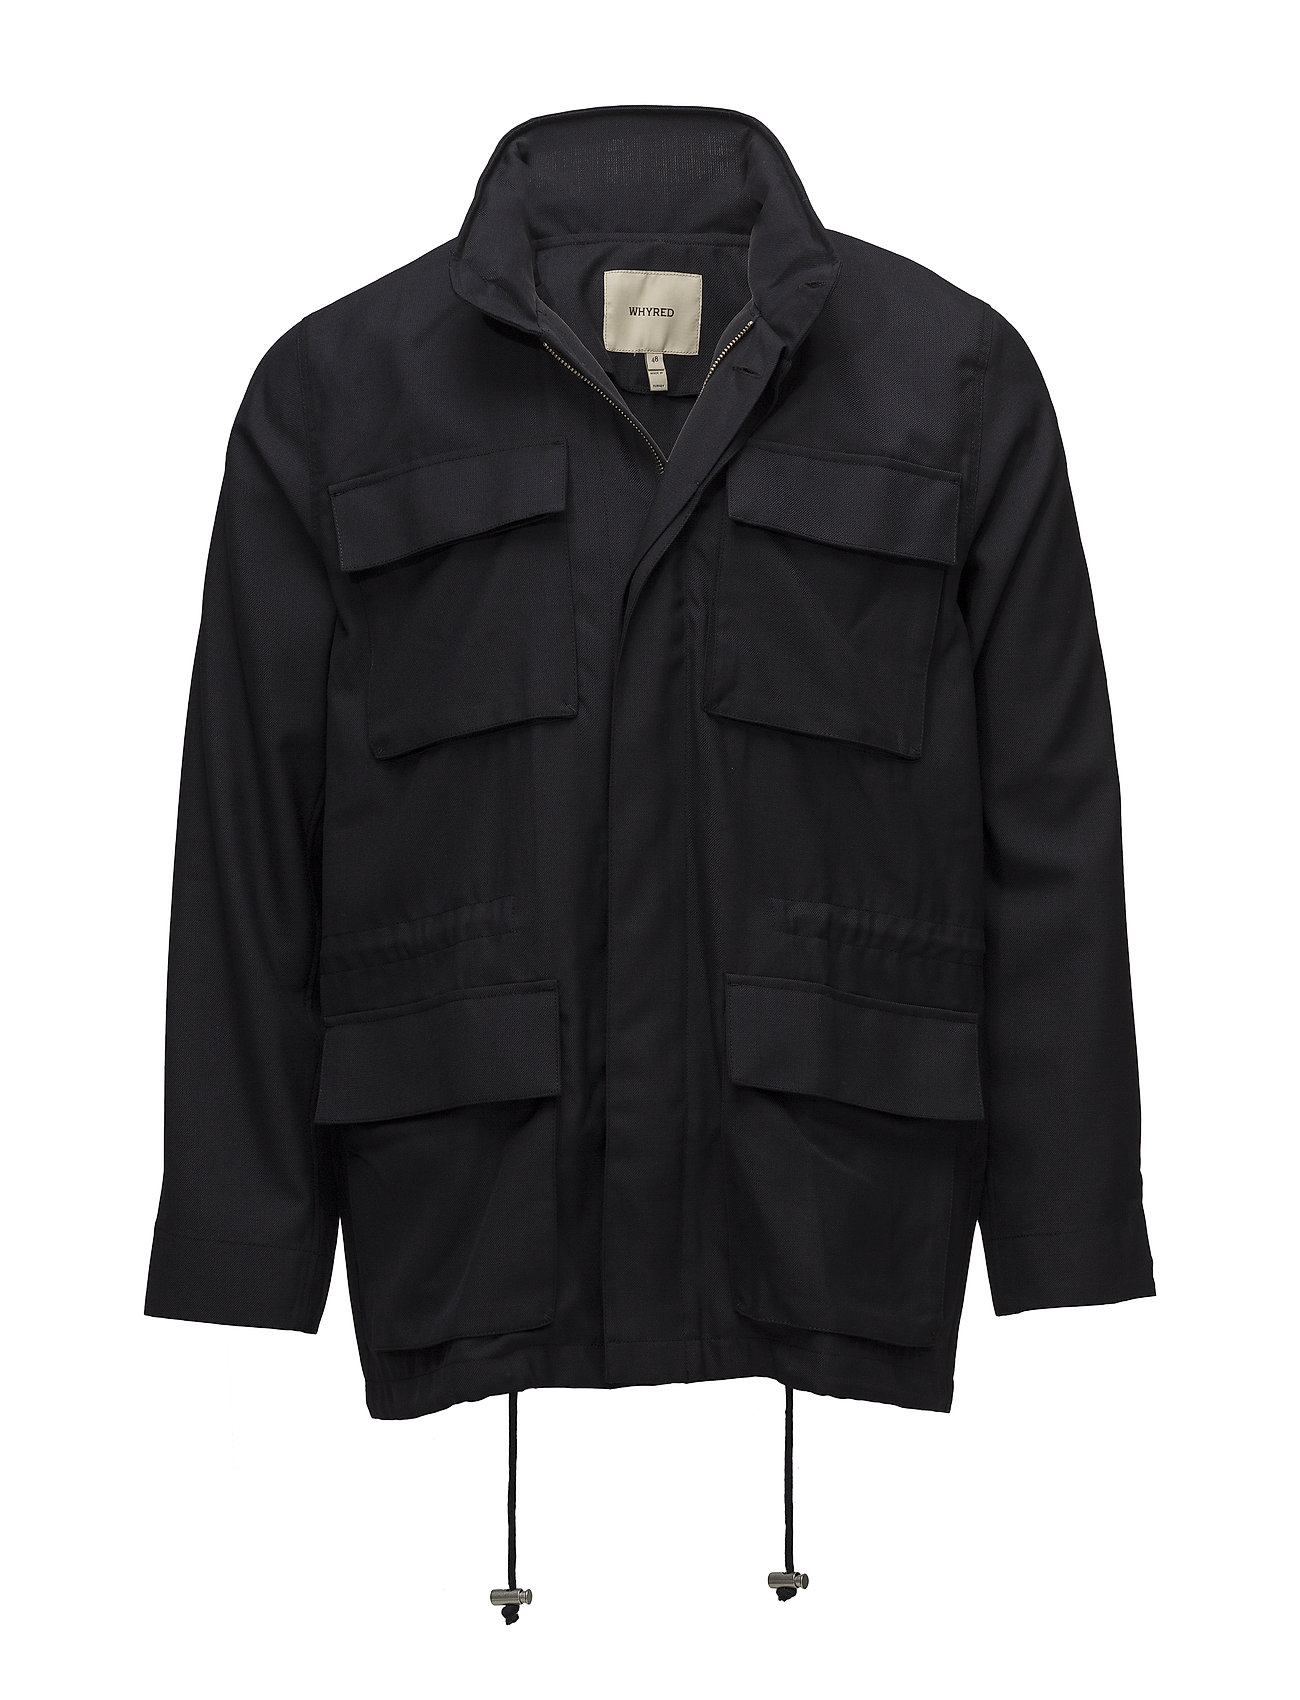 Whyred FORREST JACKET - CLASSIC NAVY